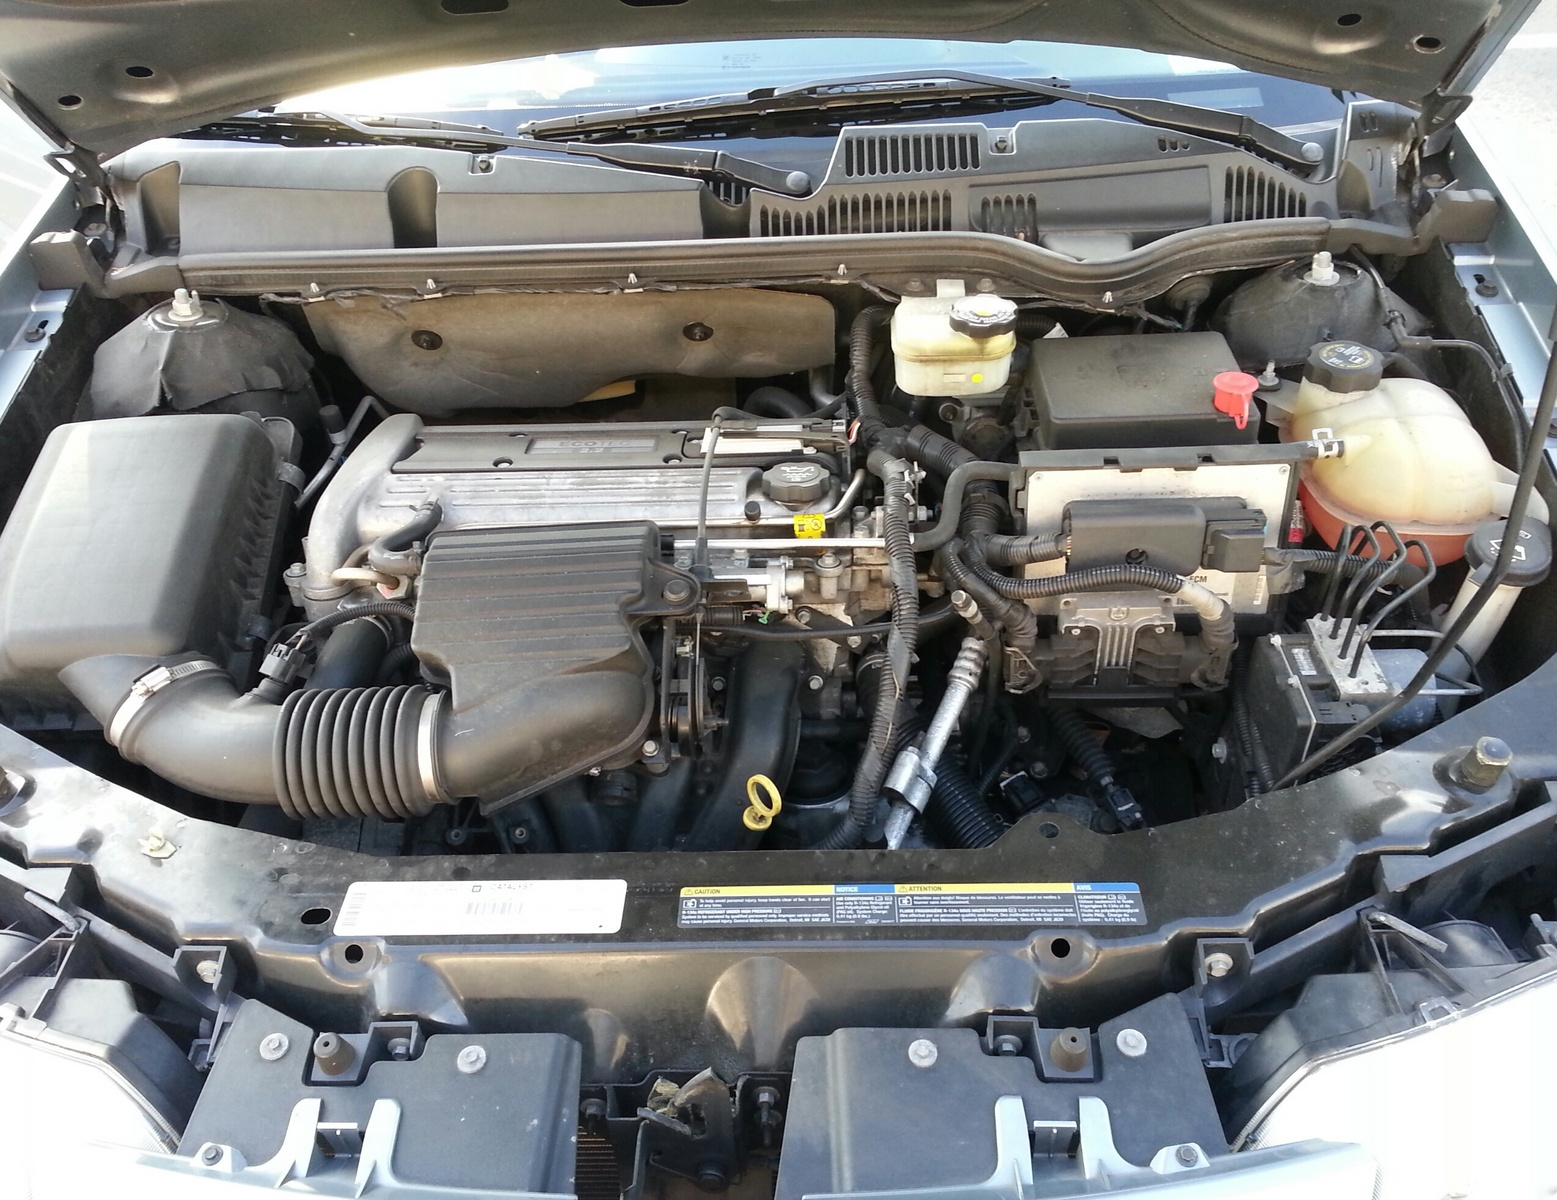 hight resolution of  2003 saturn ion 2 pic 578773213227433230 2004 saturn ion engine diagram 2004 engine problems and solutions saturn ion engine